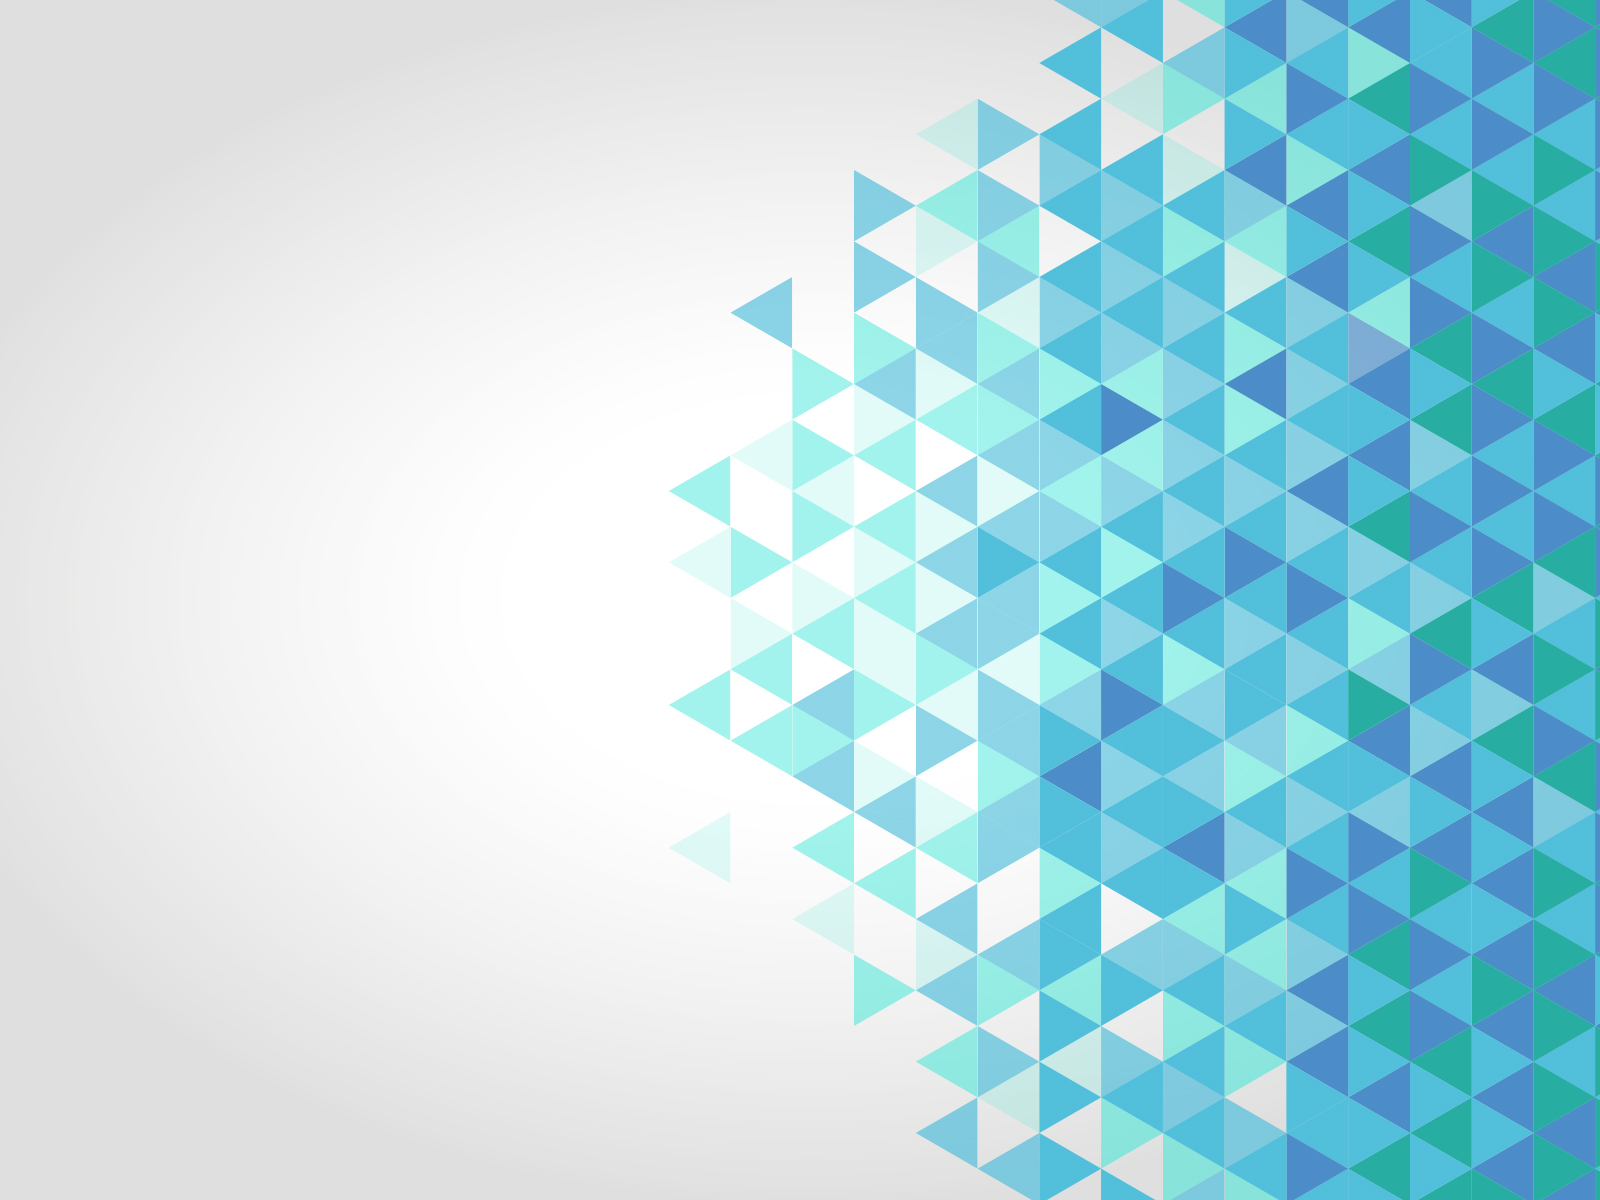 Blue polygonal backgrounds